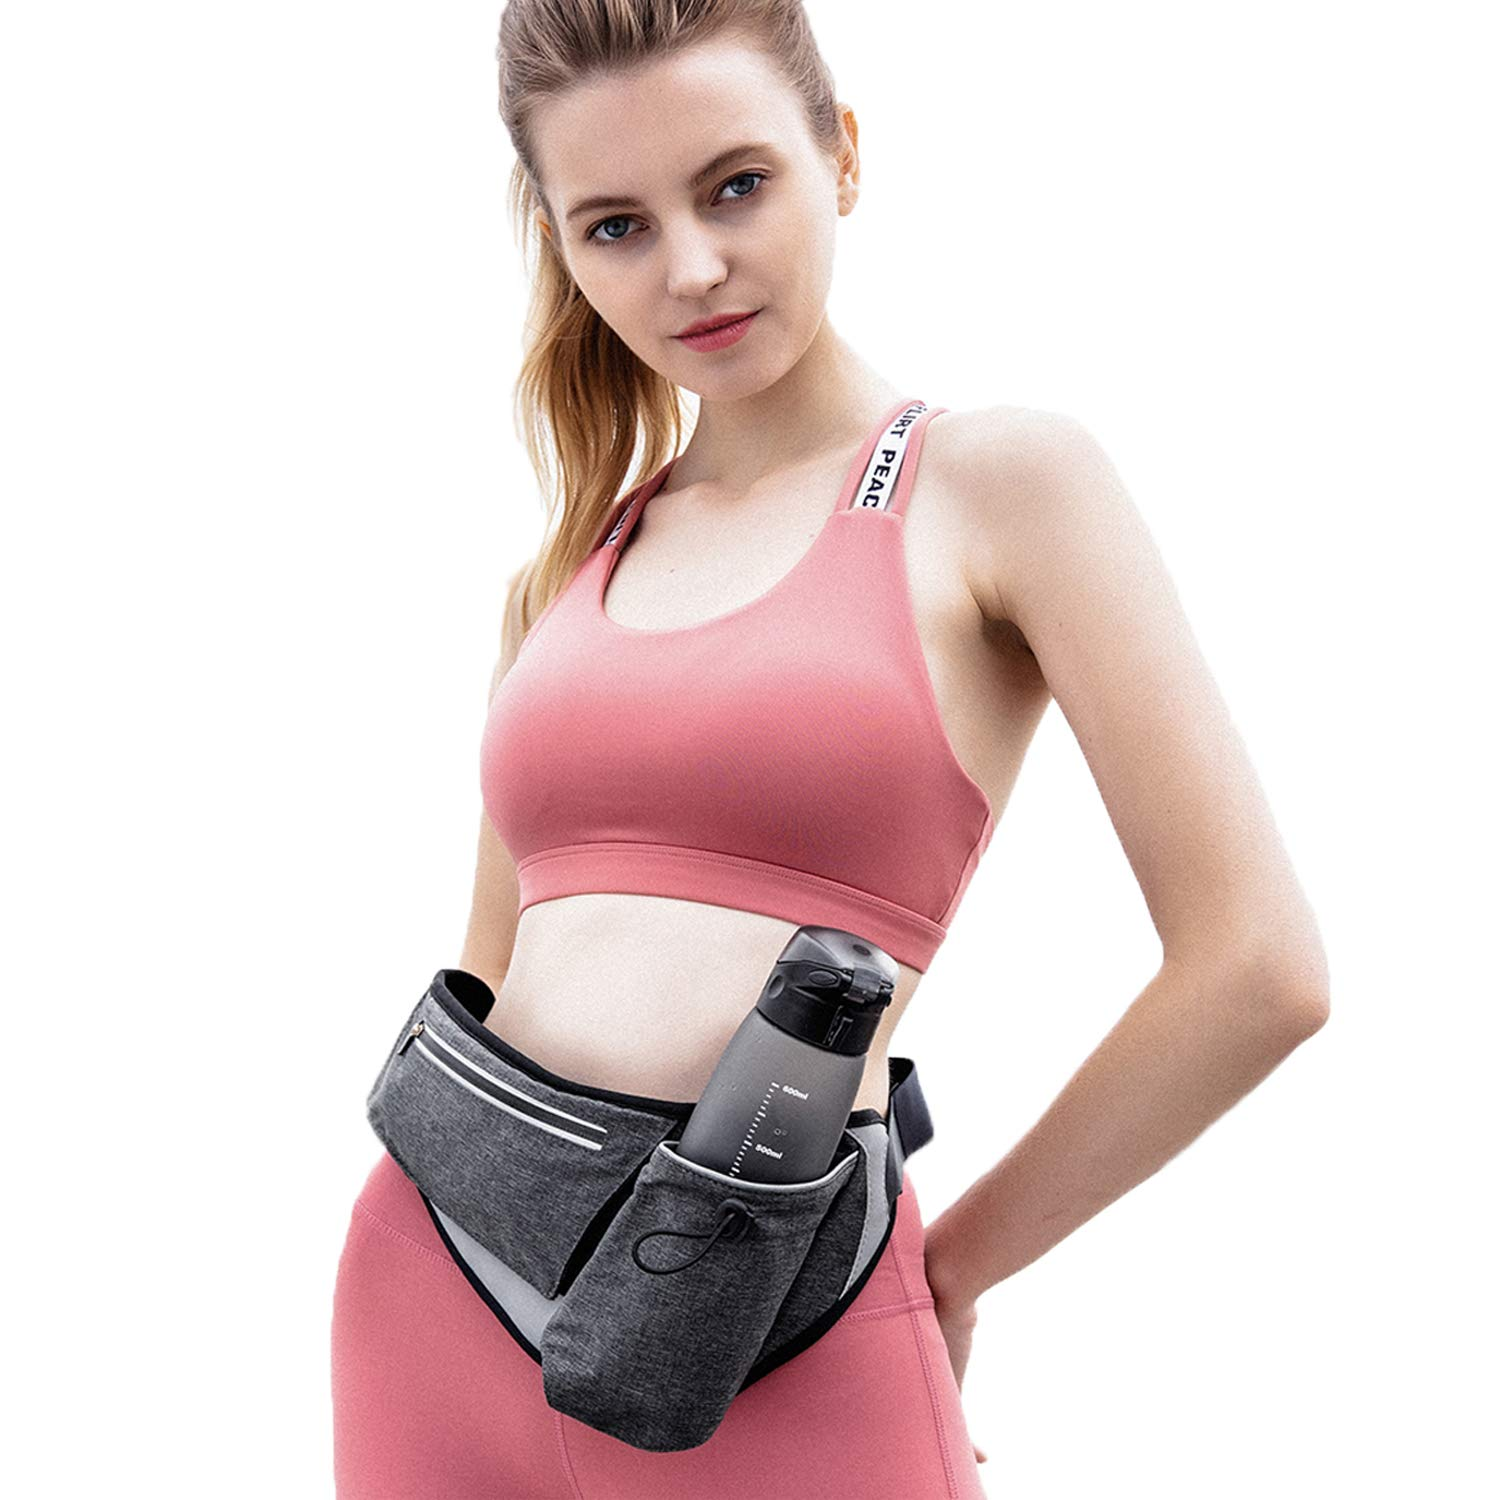 Running Fanny Waist Pack, FITNATE Fanny Waist Bag with Water Bottle Holder and Reflective Stripes, Belt Bag Waist Bag for Men and Women, Ideal for Walking, Running, Hiking, Cycling and Climbing (Grey)